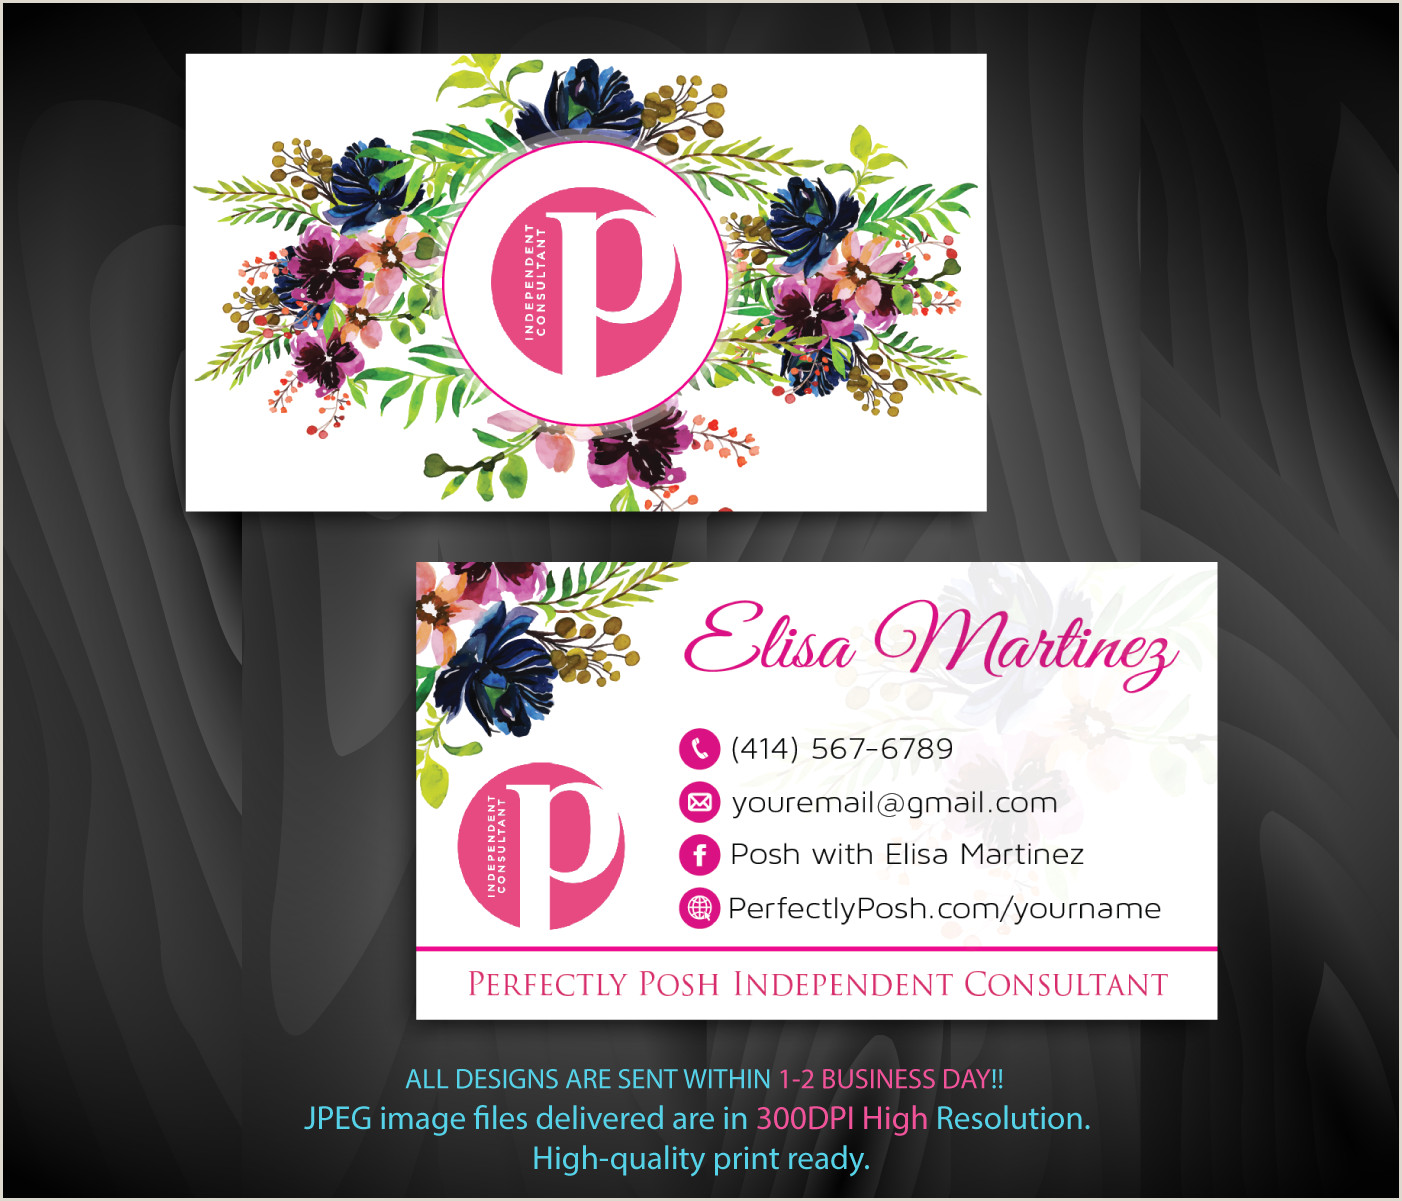 Perfectly Posh Business Card Ideas Perfectly Posh Business Cards Personalized Perfectly Posh Consultant Ps06